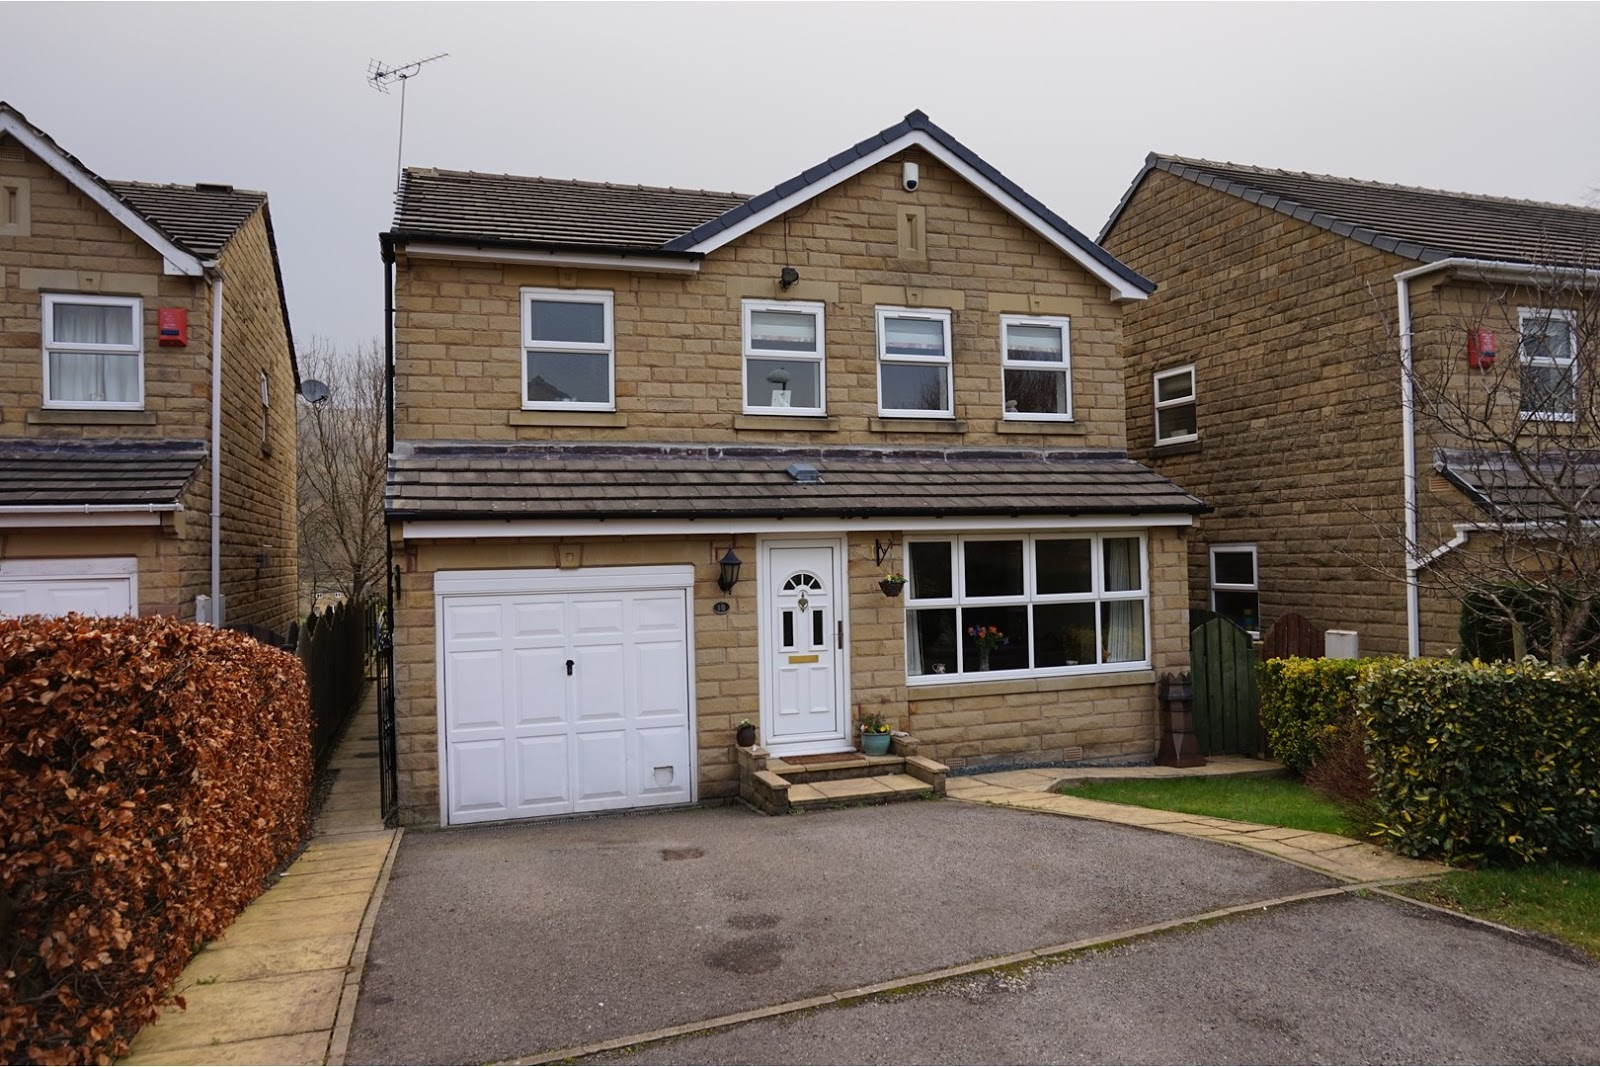 This Is Huddersfield Property Local Property News Blog